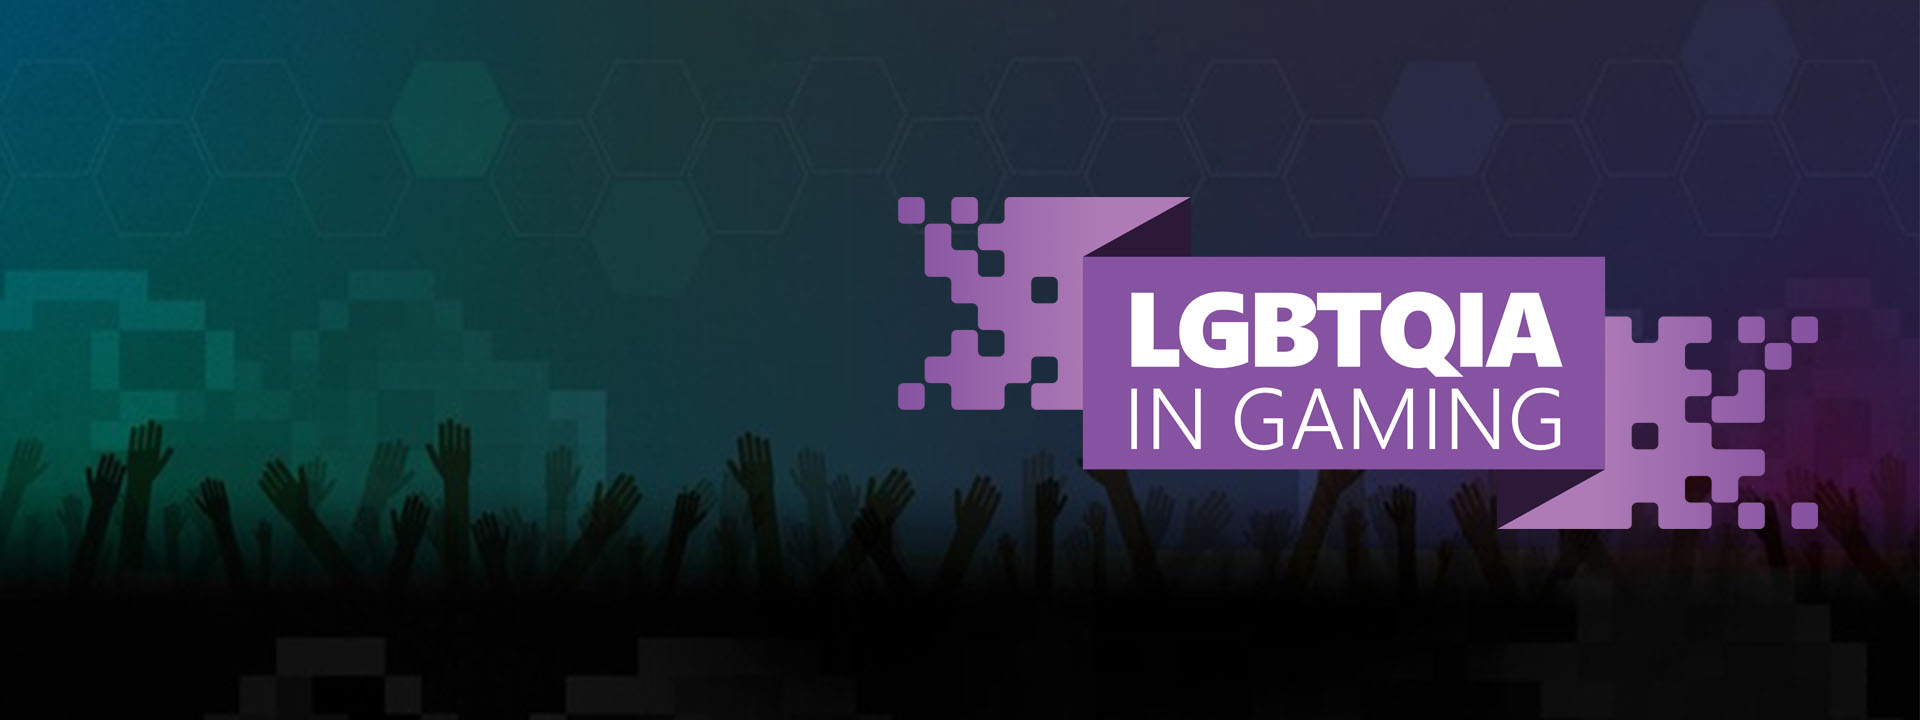 L G B T Q I A in Gaming Event Logo